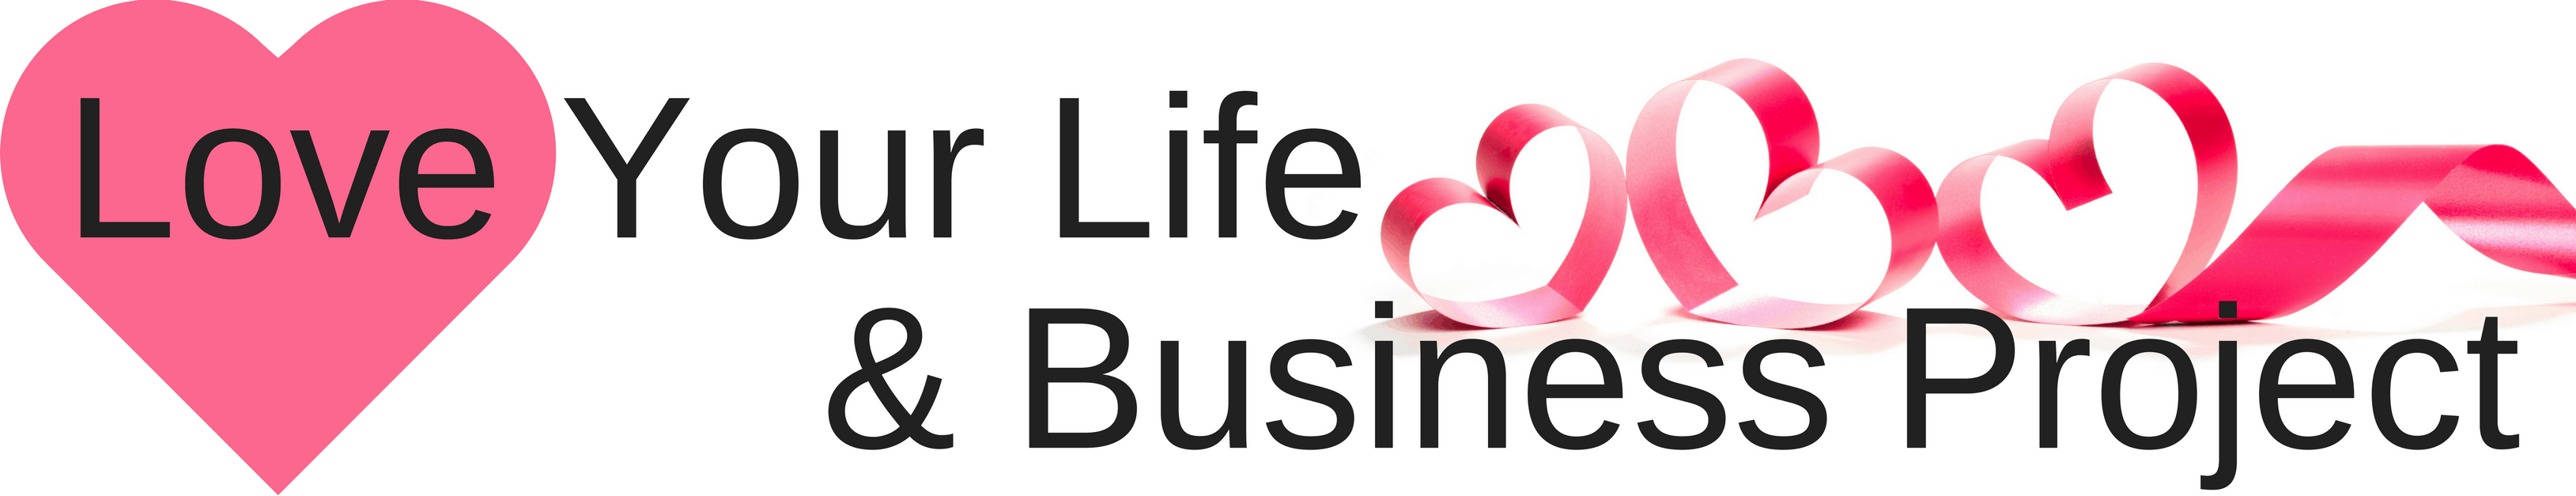 Love Your Life & Business Project